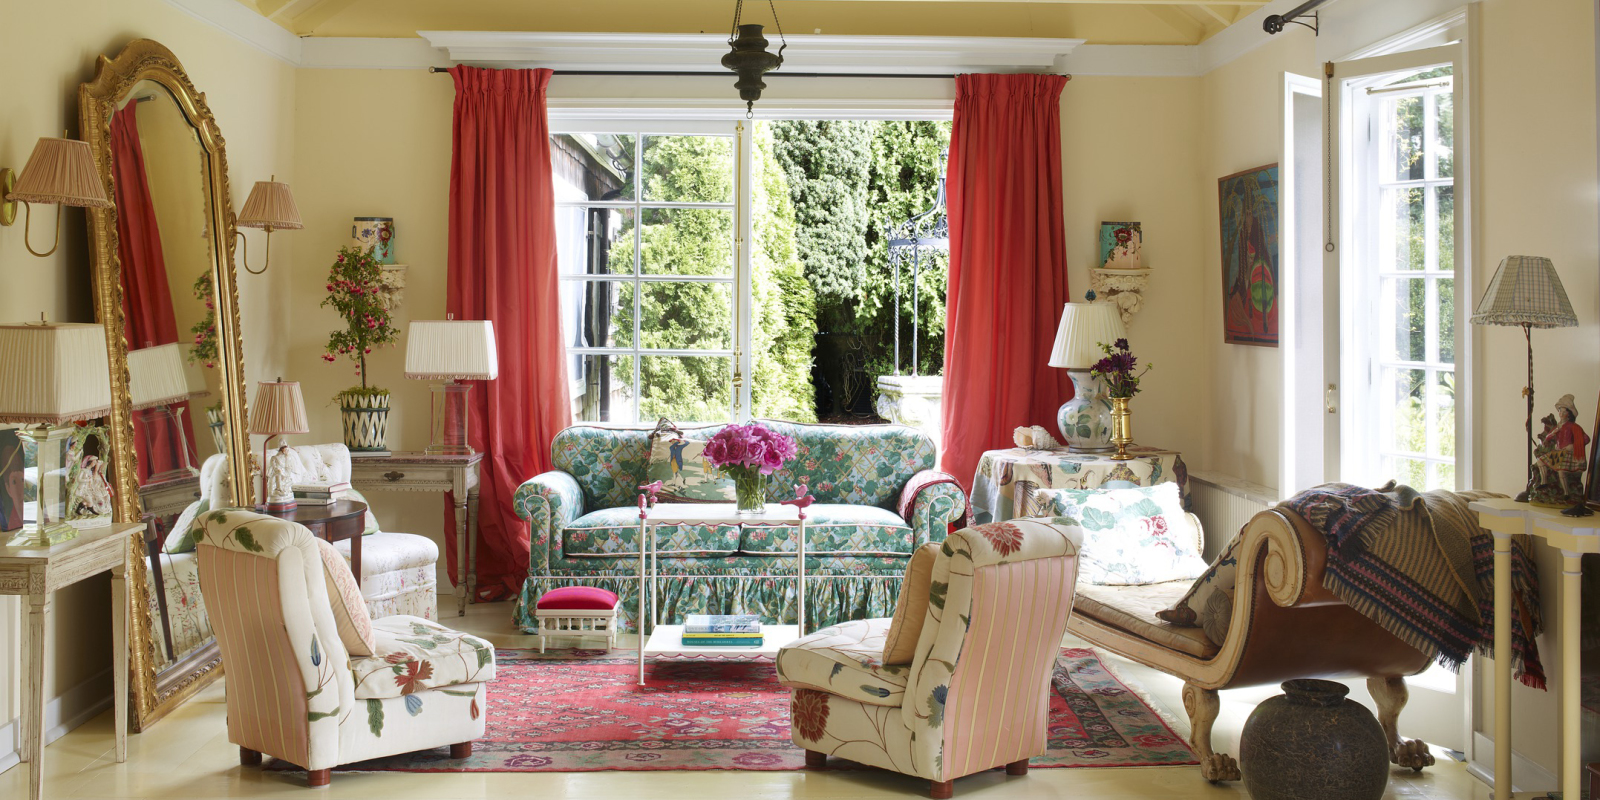 HOUSE TOUR: Inside Lorry Newhouse's Perfectly Charming Cottage